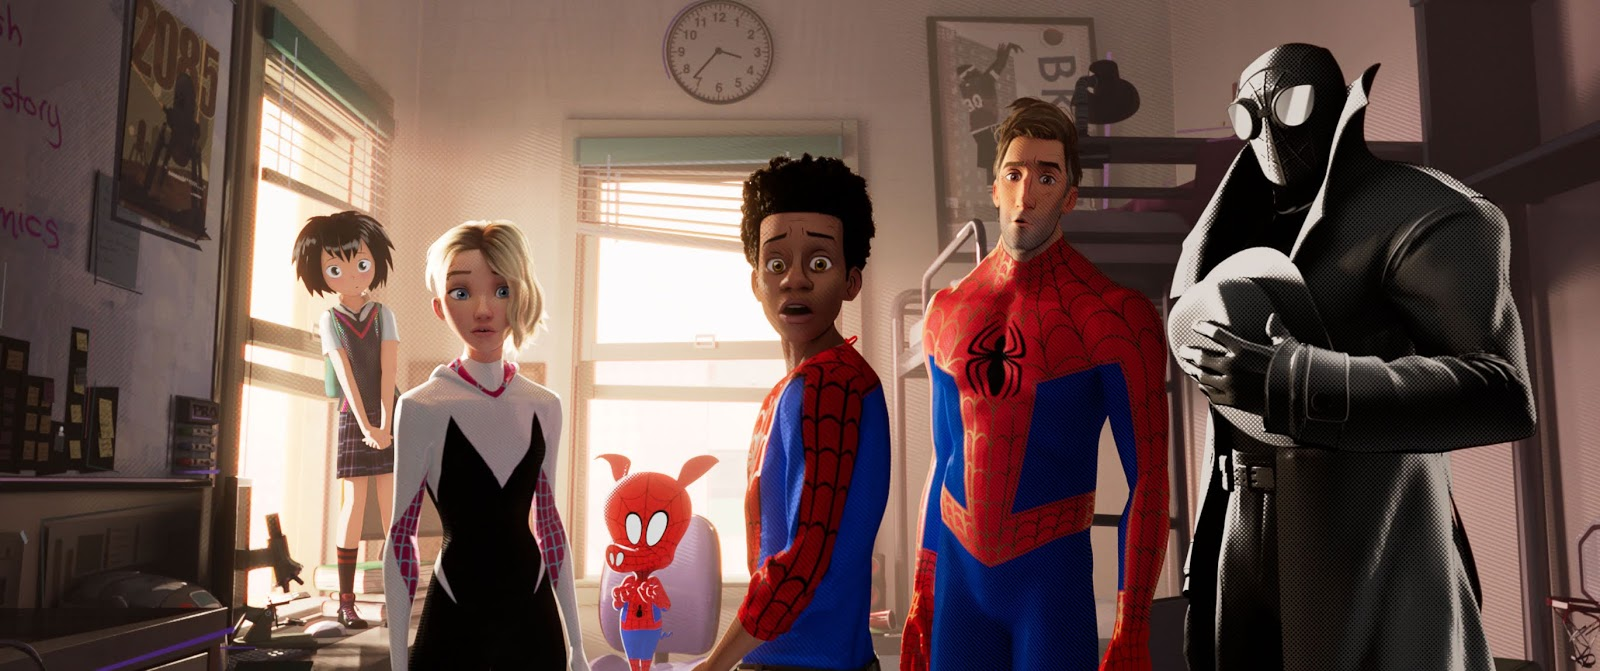 Aly Michalka Two And A Half Men Gif dell on movies: spider-man: into the spider-verse